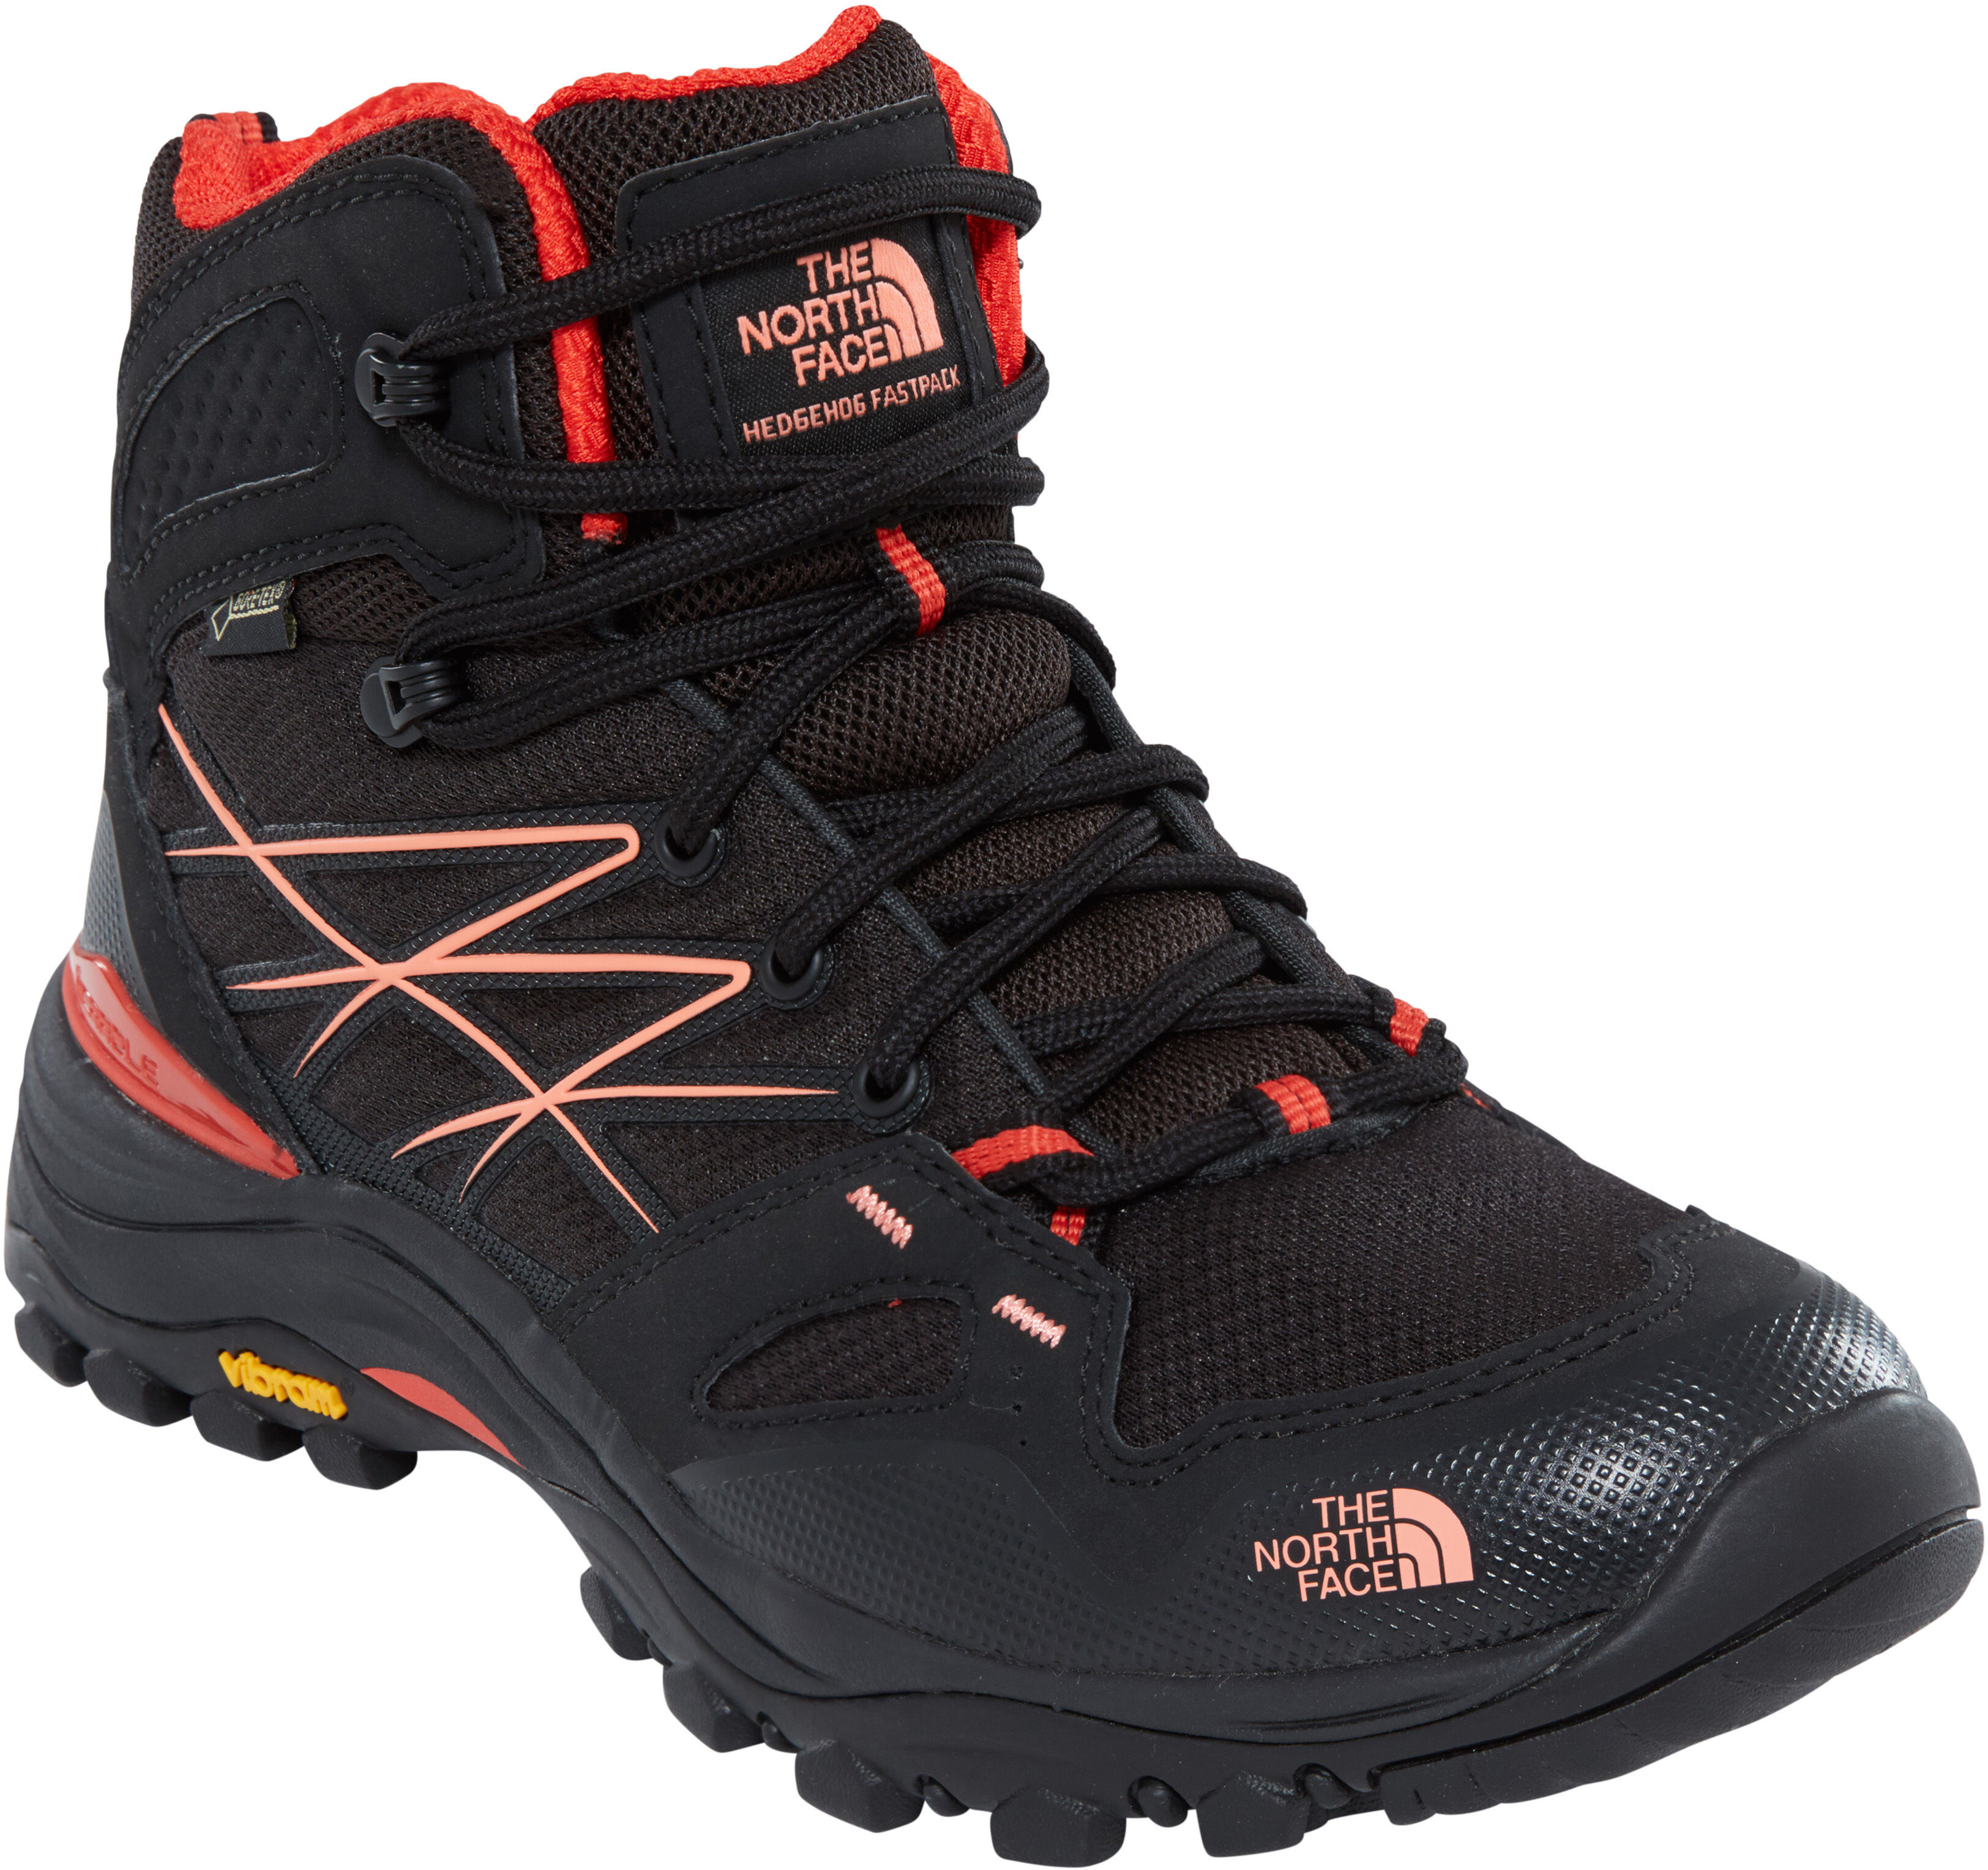 0646564c The North Face Hedgehog Fastpack Mid GTX Calzado Mujer, tnf black/fire  brick red